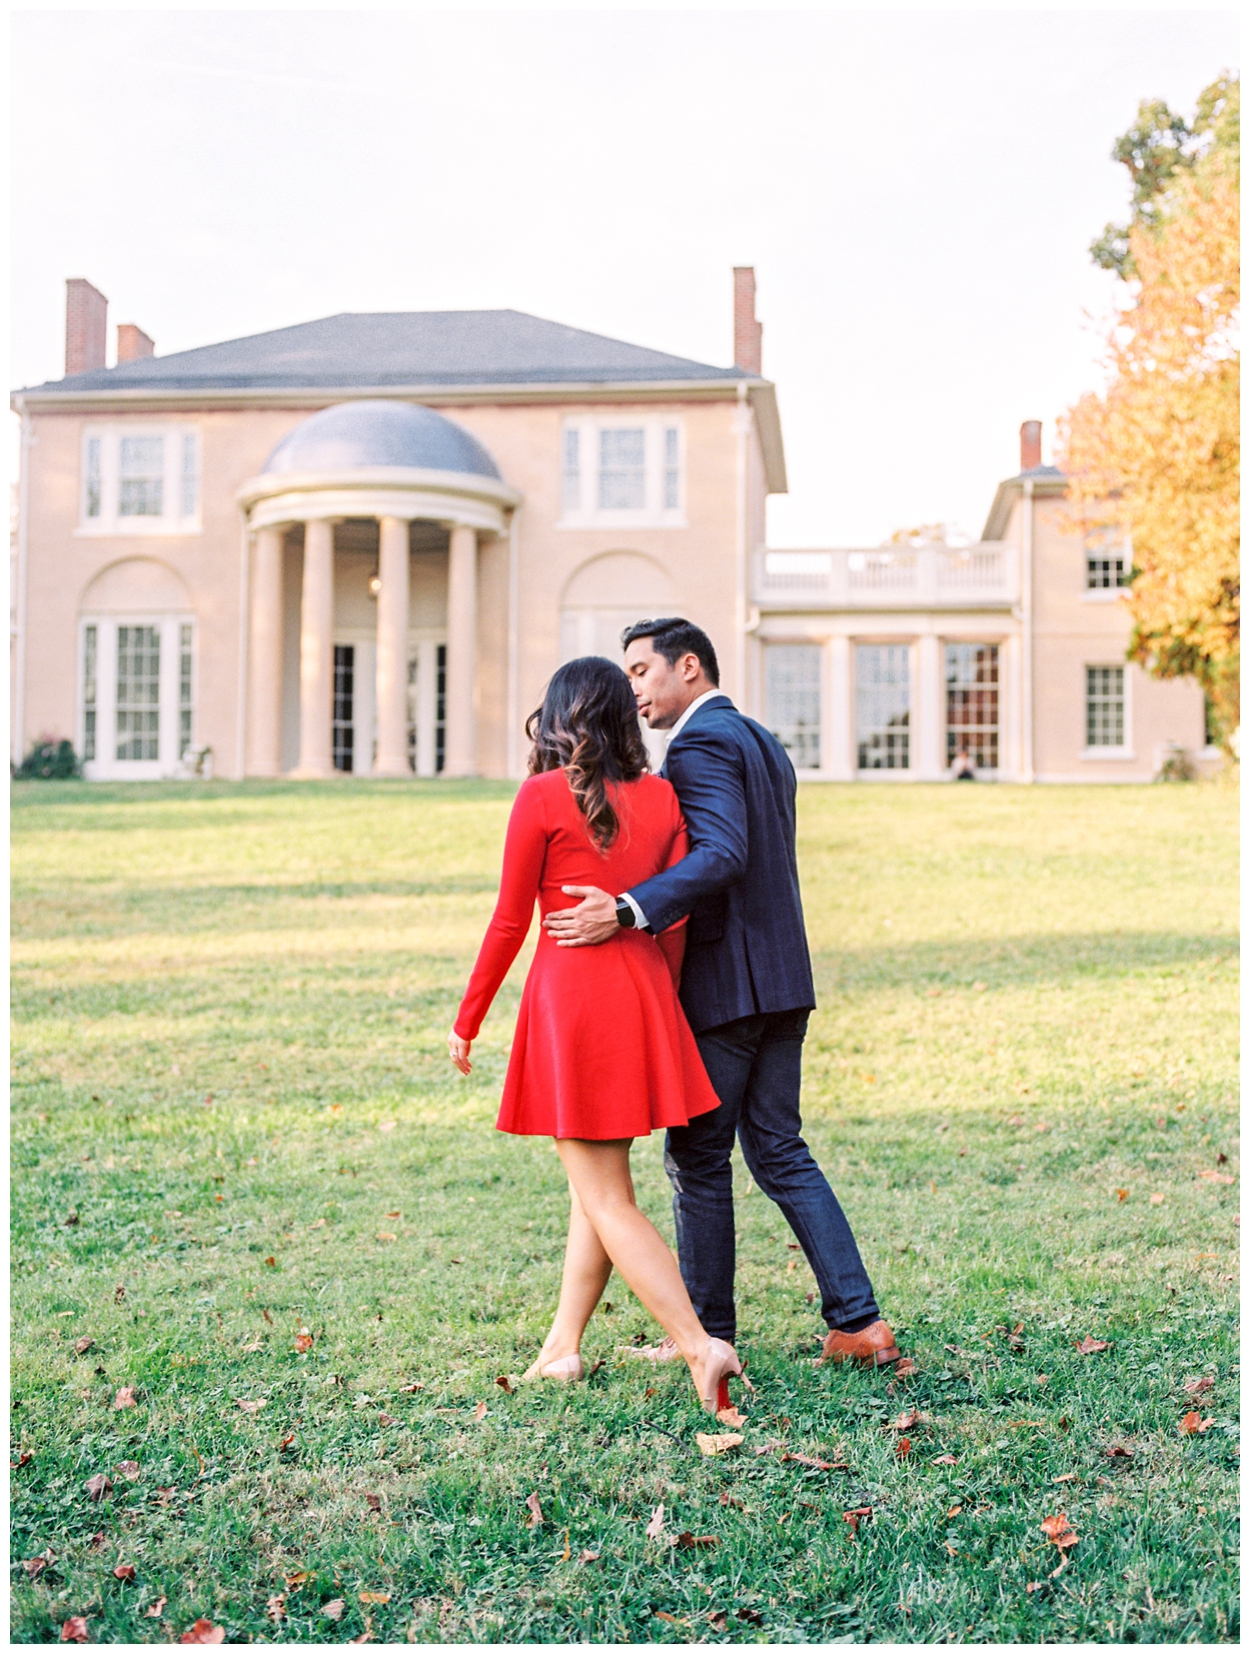 Fall engagement session at Tudor Place in Georgetown Washington, DC by fine art wedding photographer Lissa Ryan Photography